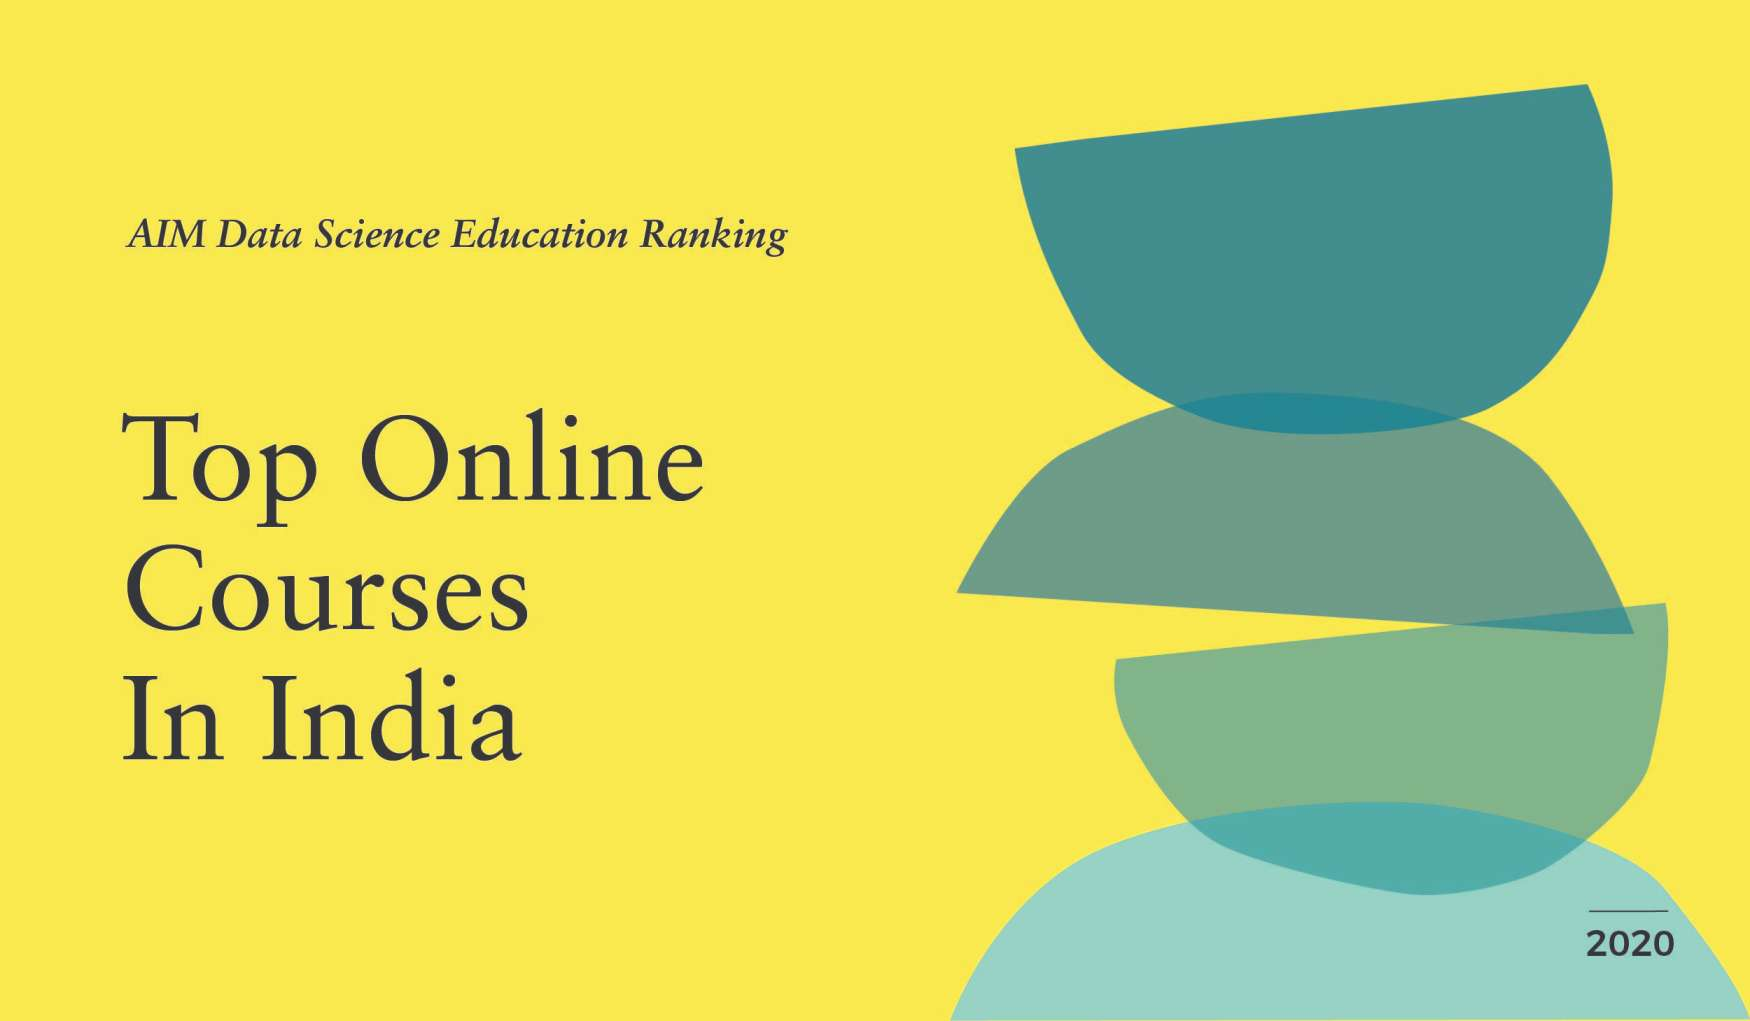 AIM Data Science Education Ranking 2020 | Top Online Courses In India